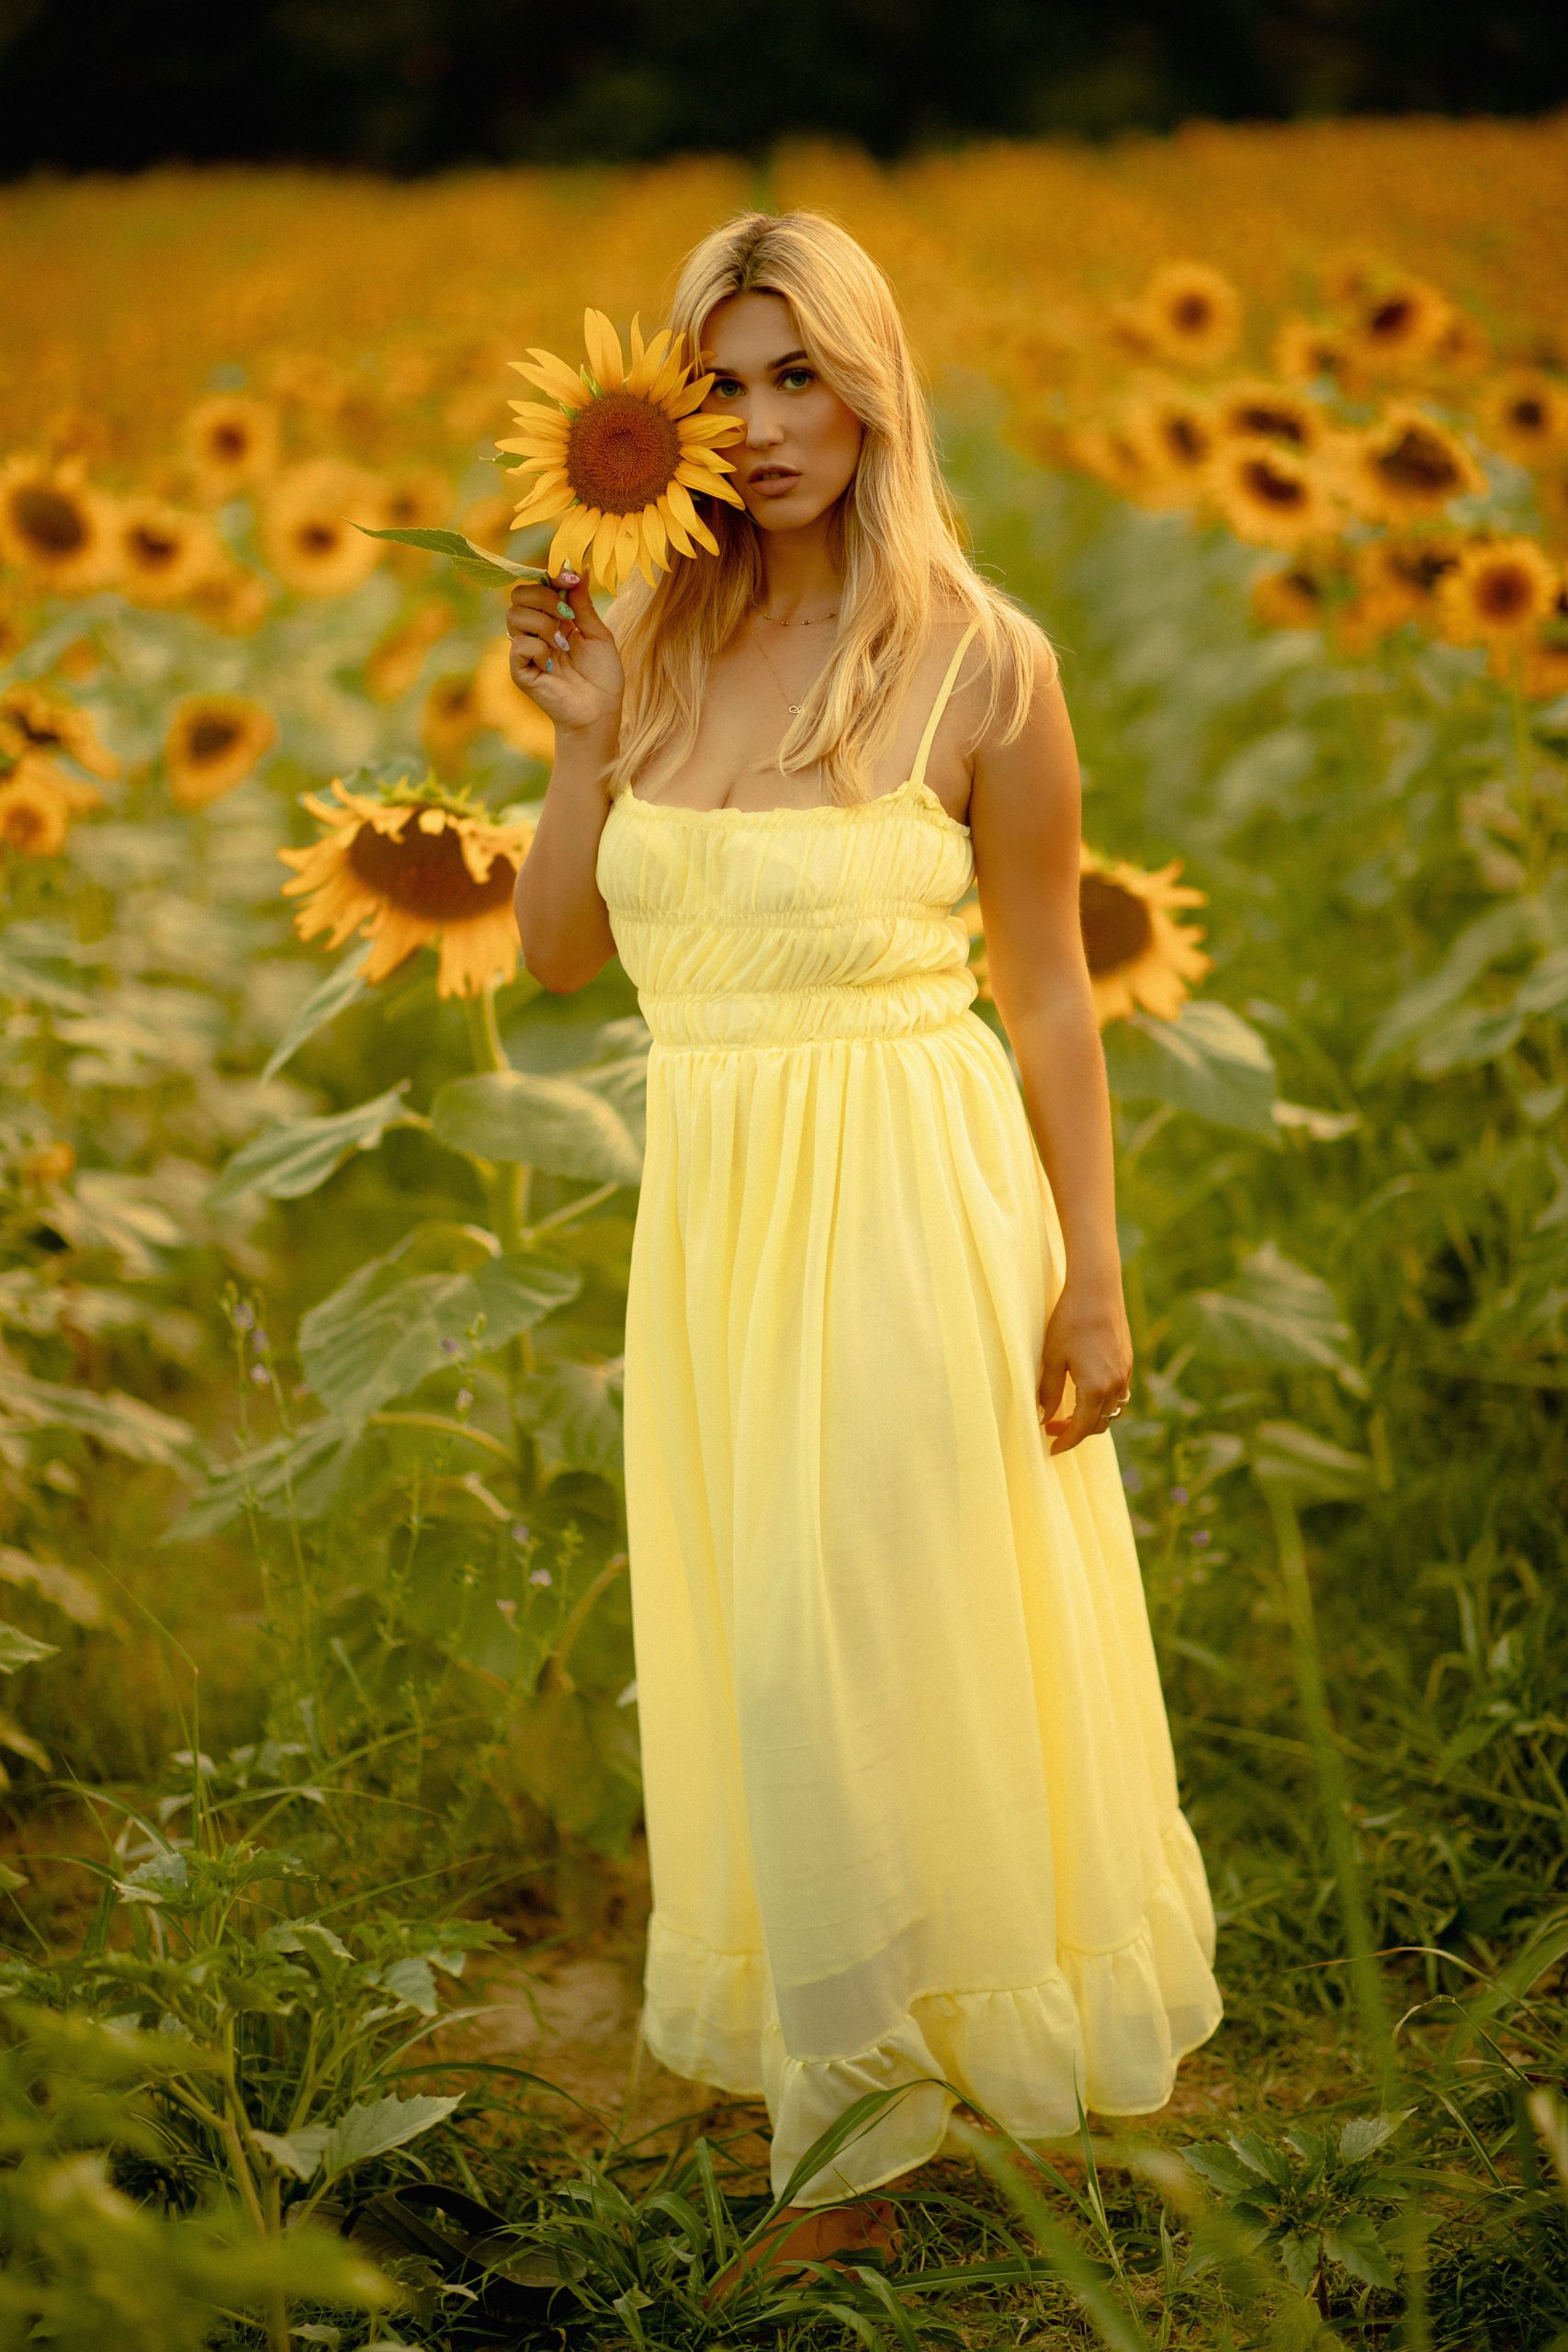 Pretty lady posing with a sunflower in a field